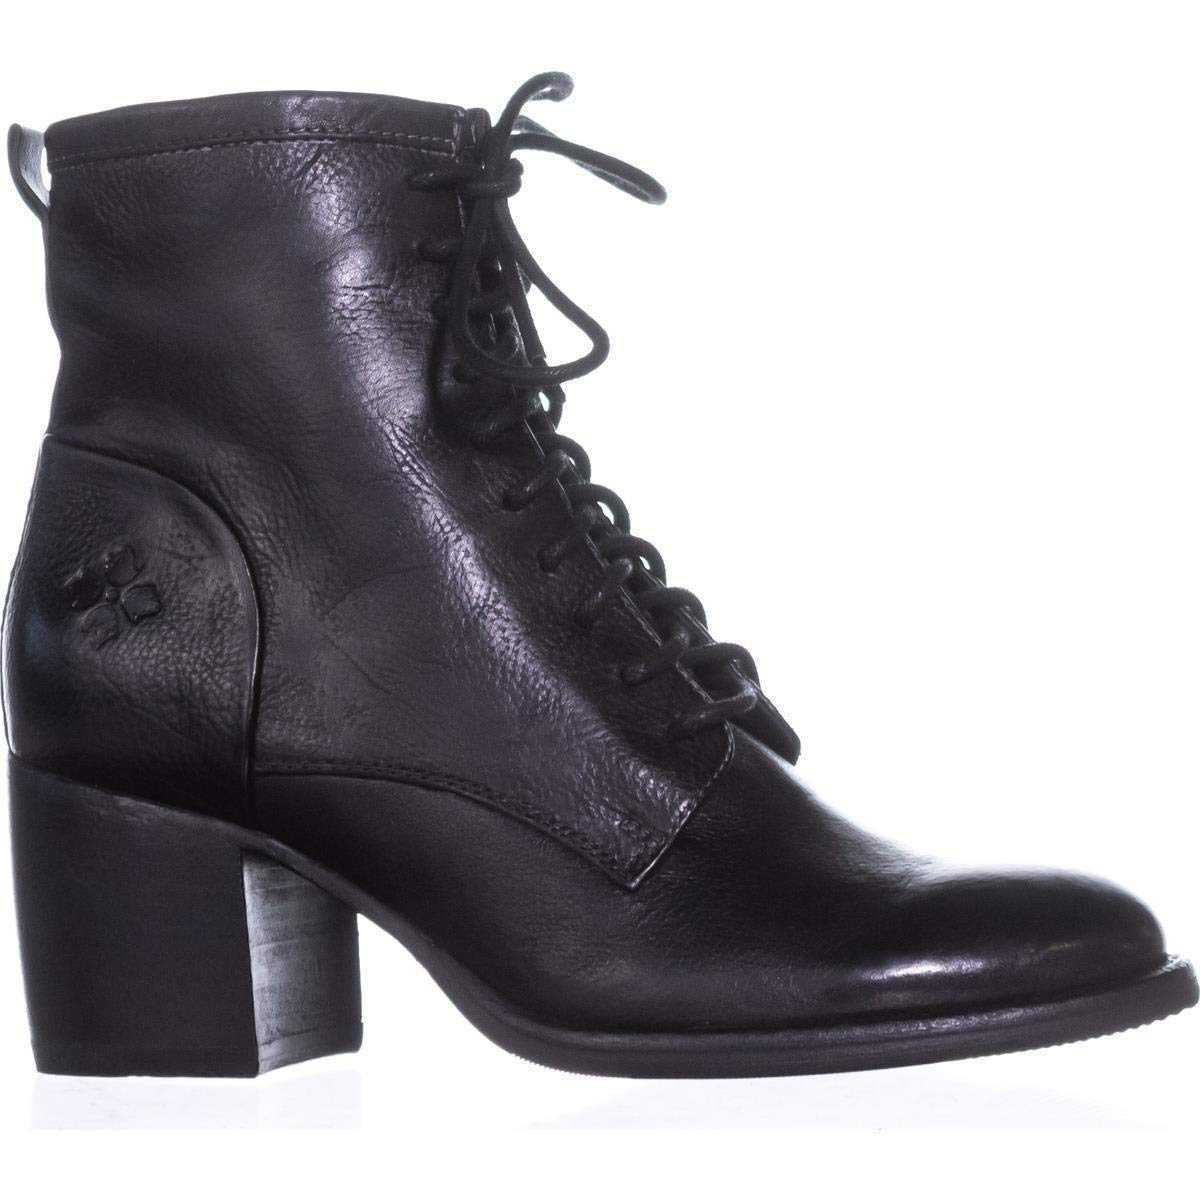 thumbnail 9 - Patricia-Nash-Womens-Sicily-Leather-Closed-Toe-Ankle-Fashion-Boots